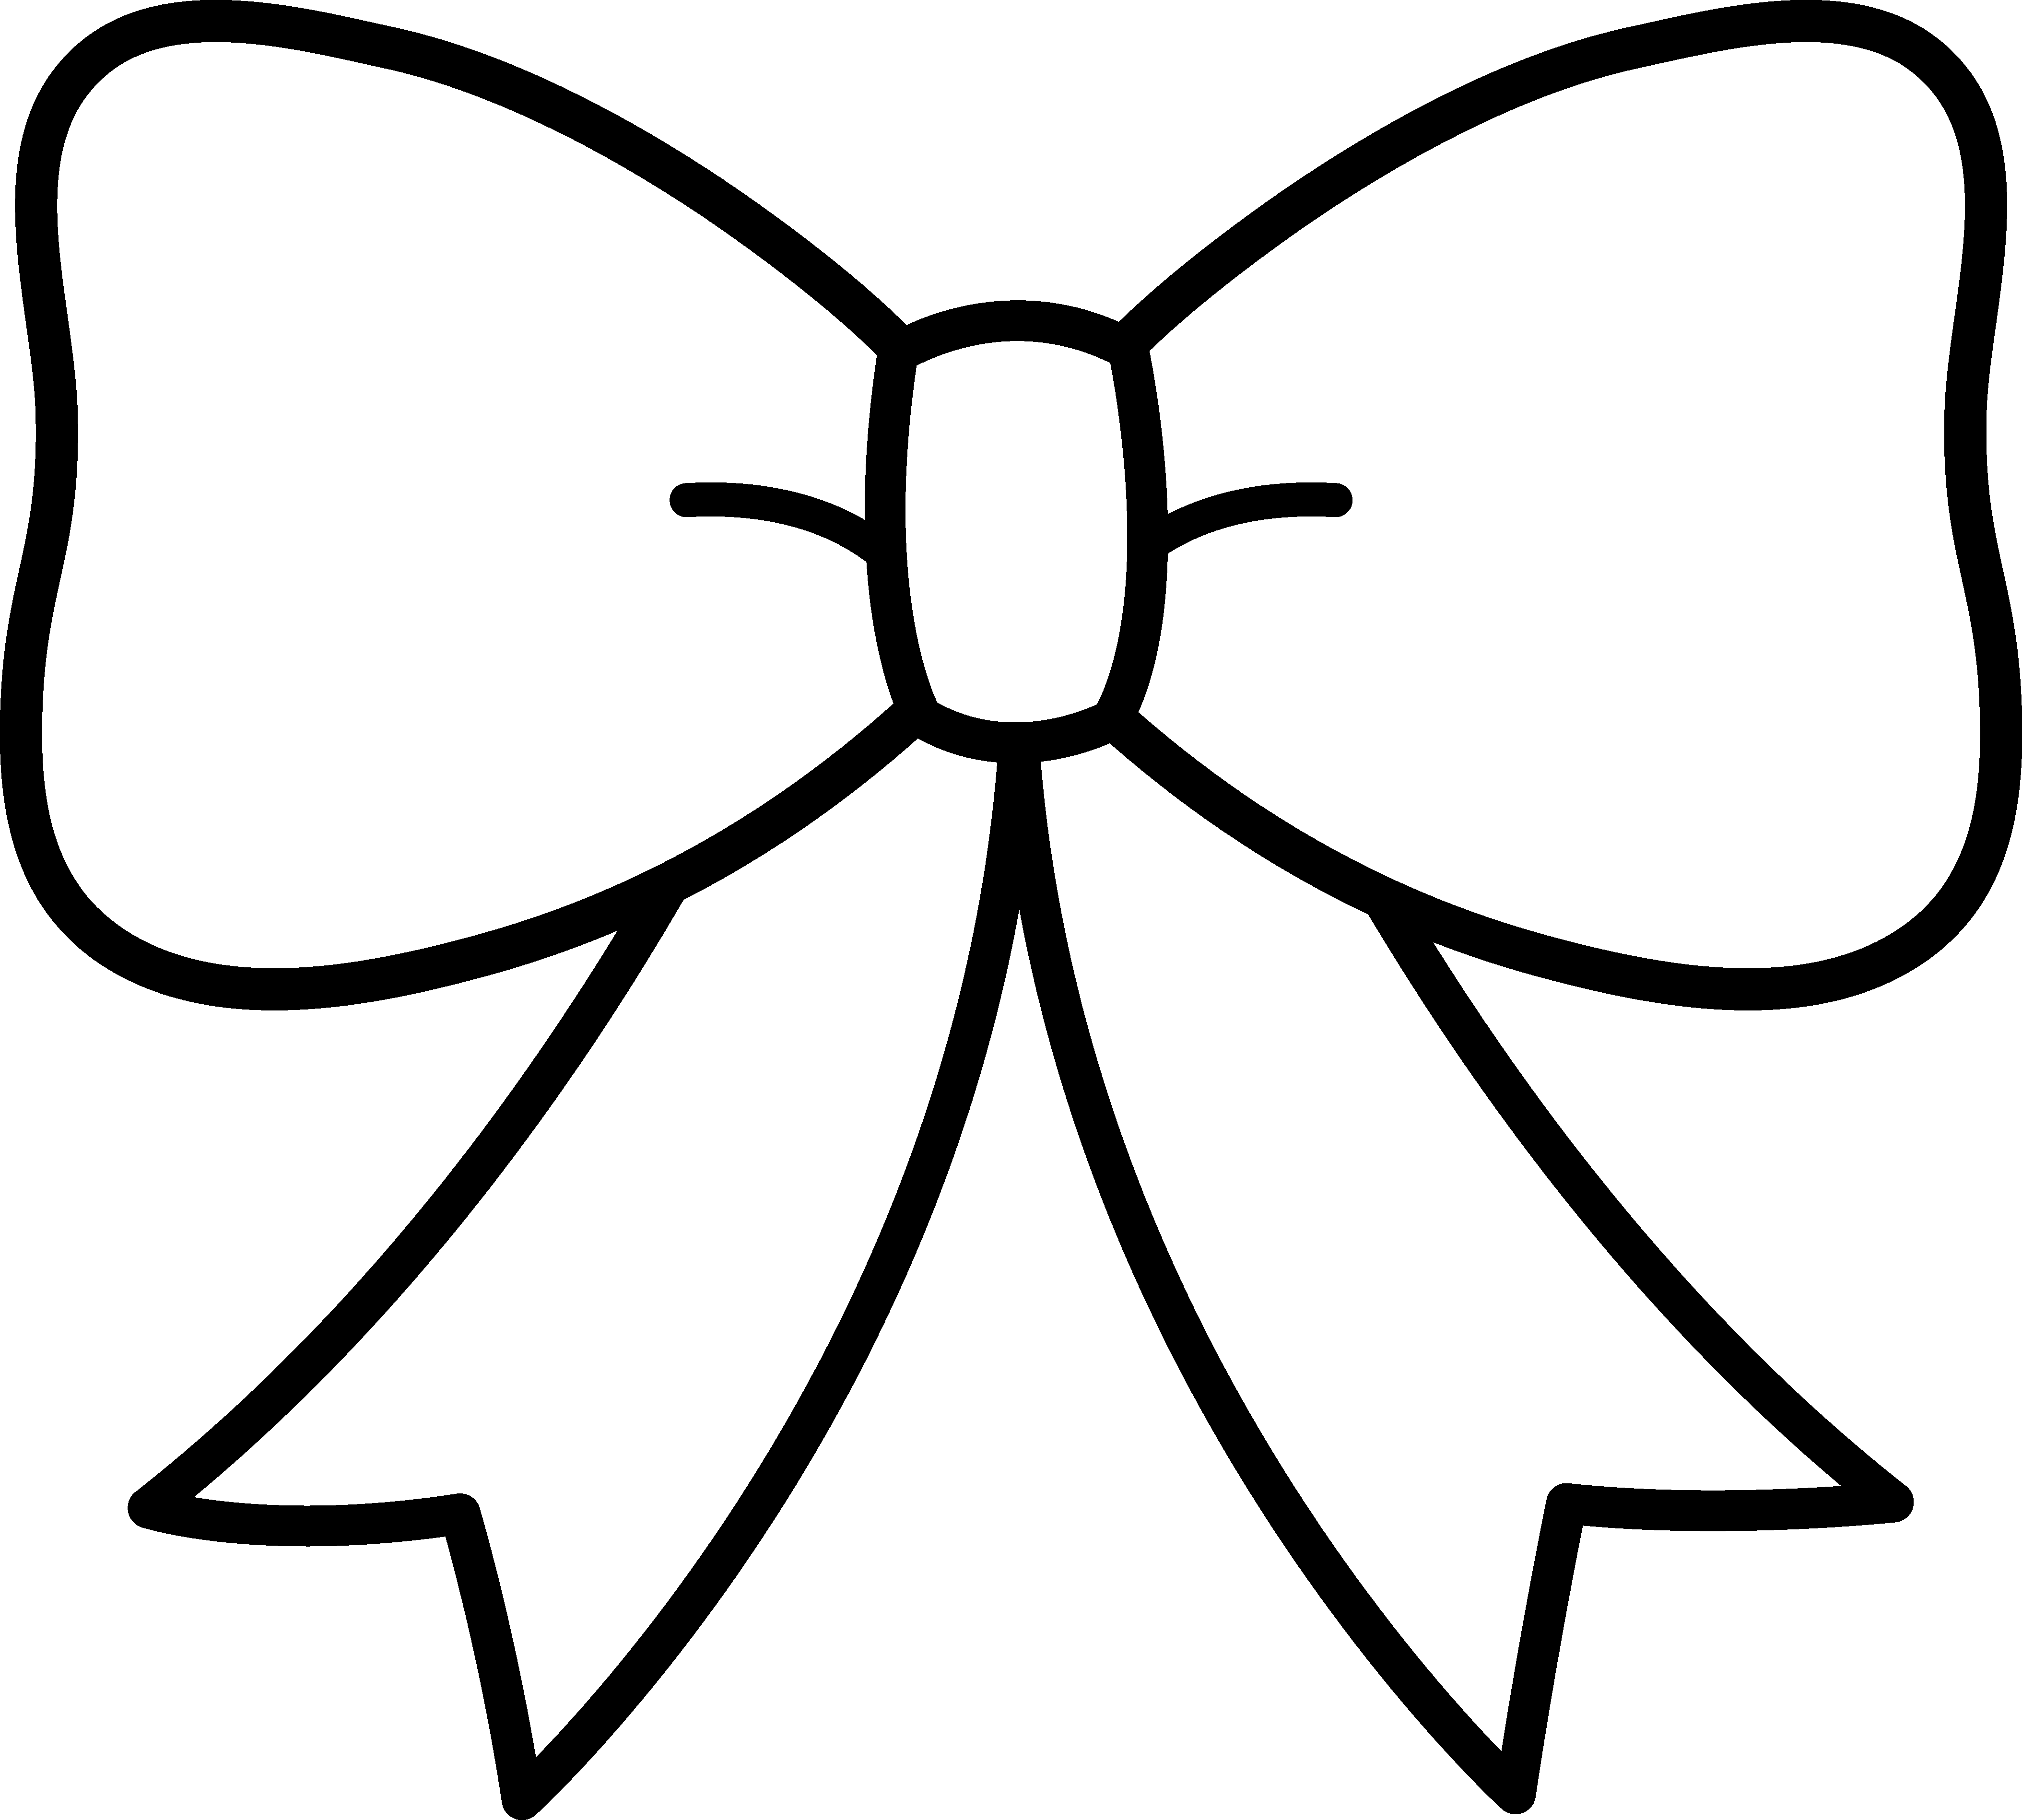 Black And White Bow Design - Free Clip Art